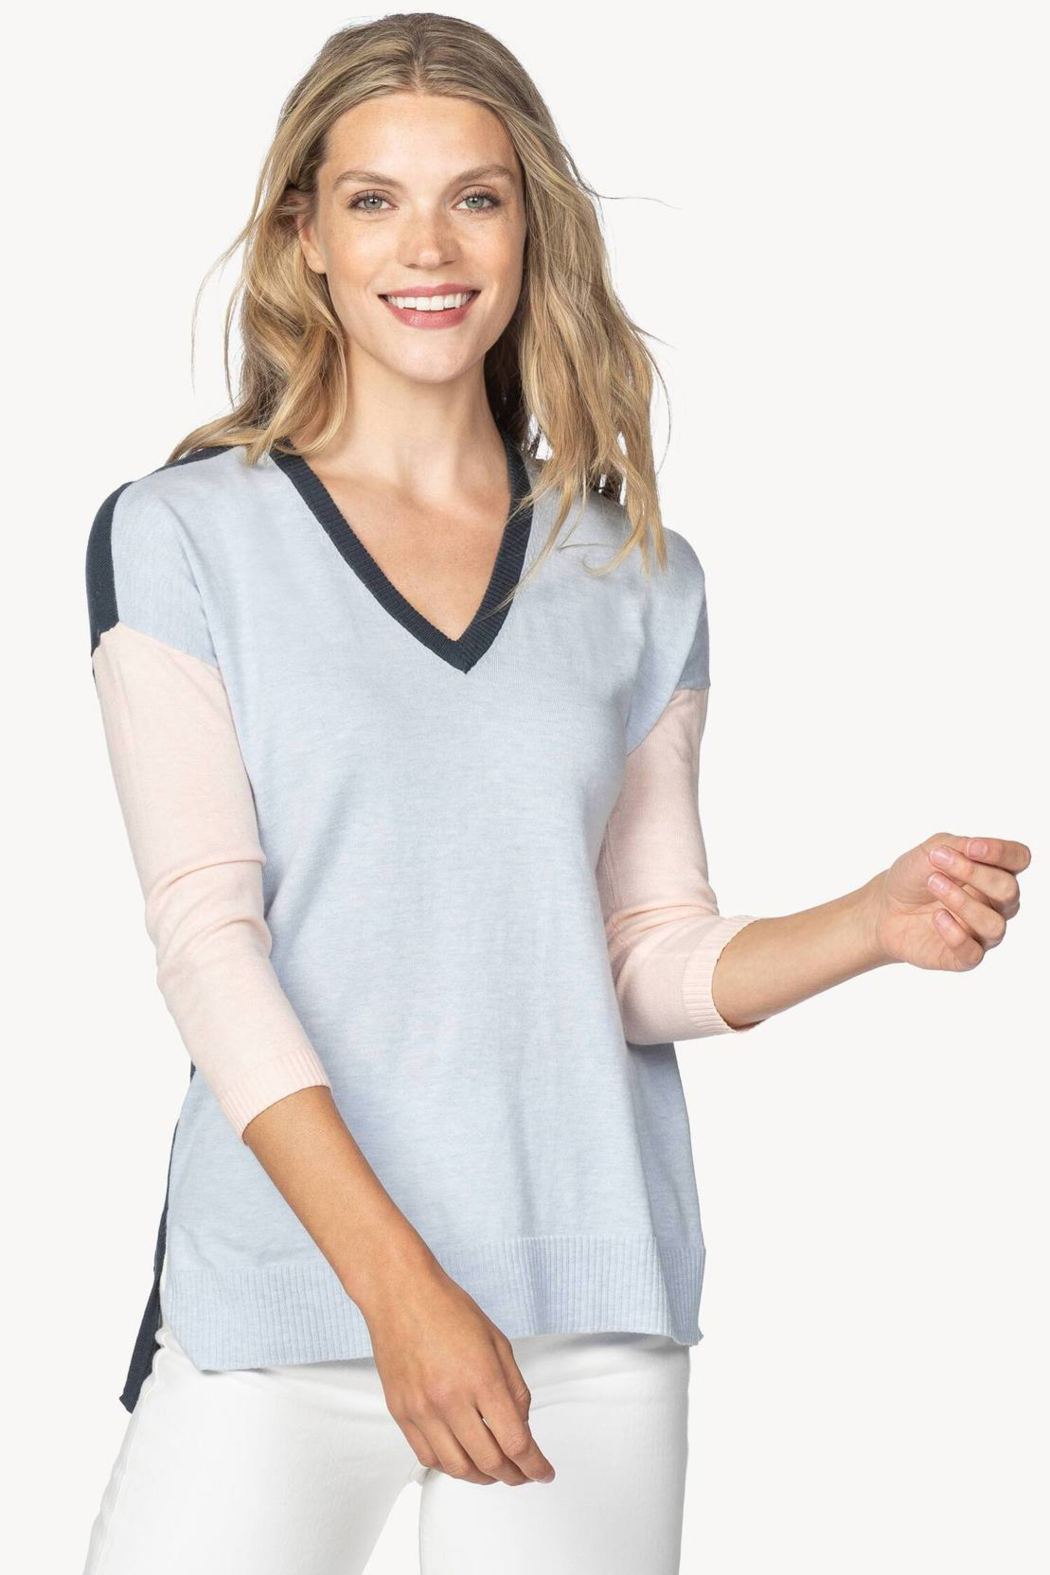 Lilla P PA1369 - Colorblock V-Neck Sweater - Front Cropped Image